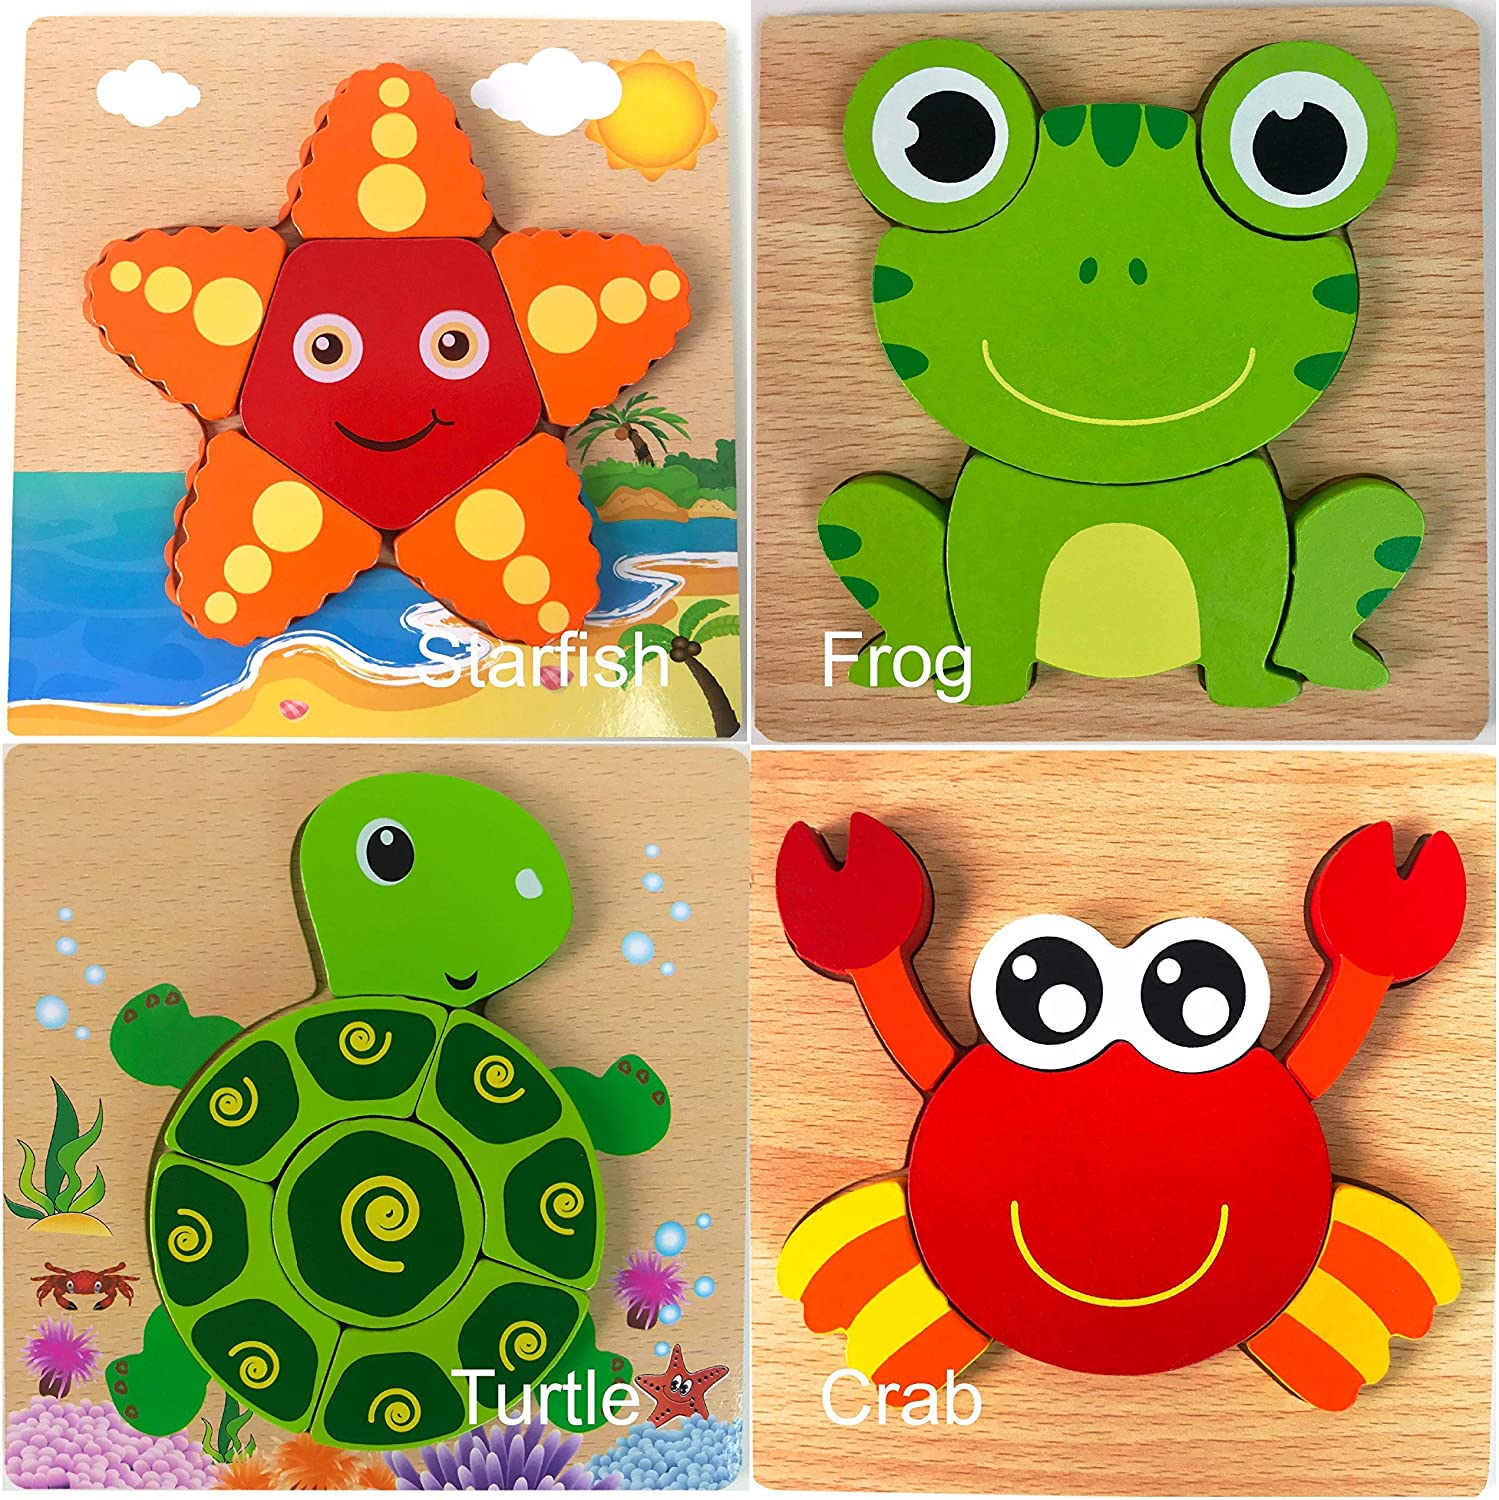 GBG Bib & Toys Safe Wooden Jigsaw Puzzles, [4 Pack] Water Friends (Animals) Patterns Puzzles for Toddlers Kids Early Educational Toys Gifts, Teaching Aids for 1 2 3 Years Old Boys & Girls